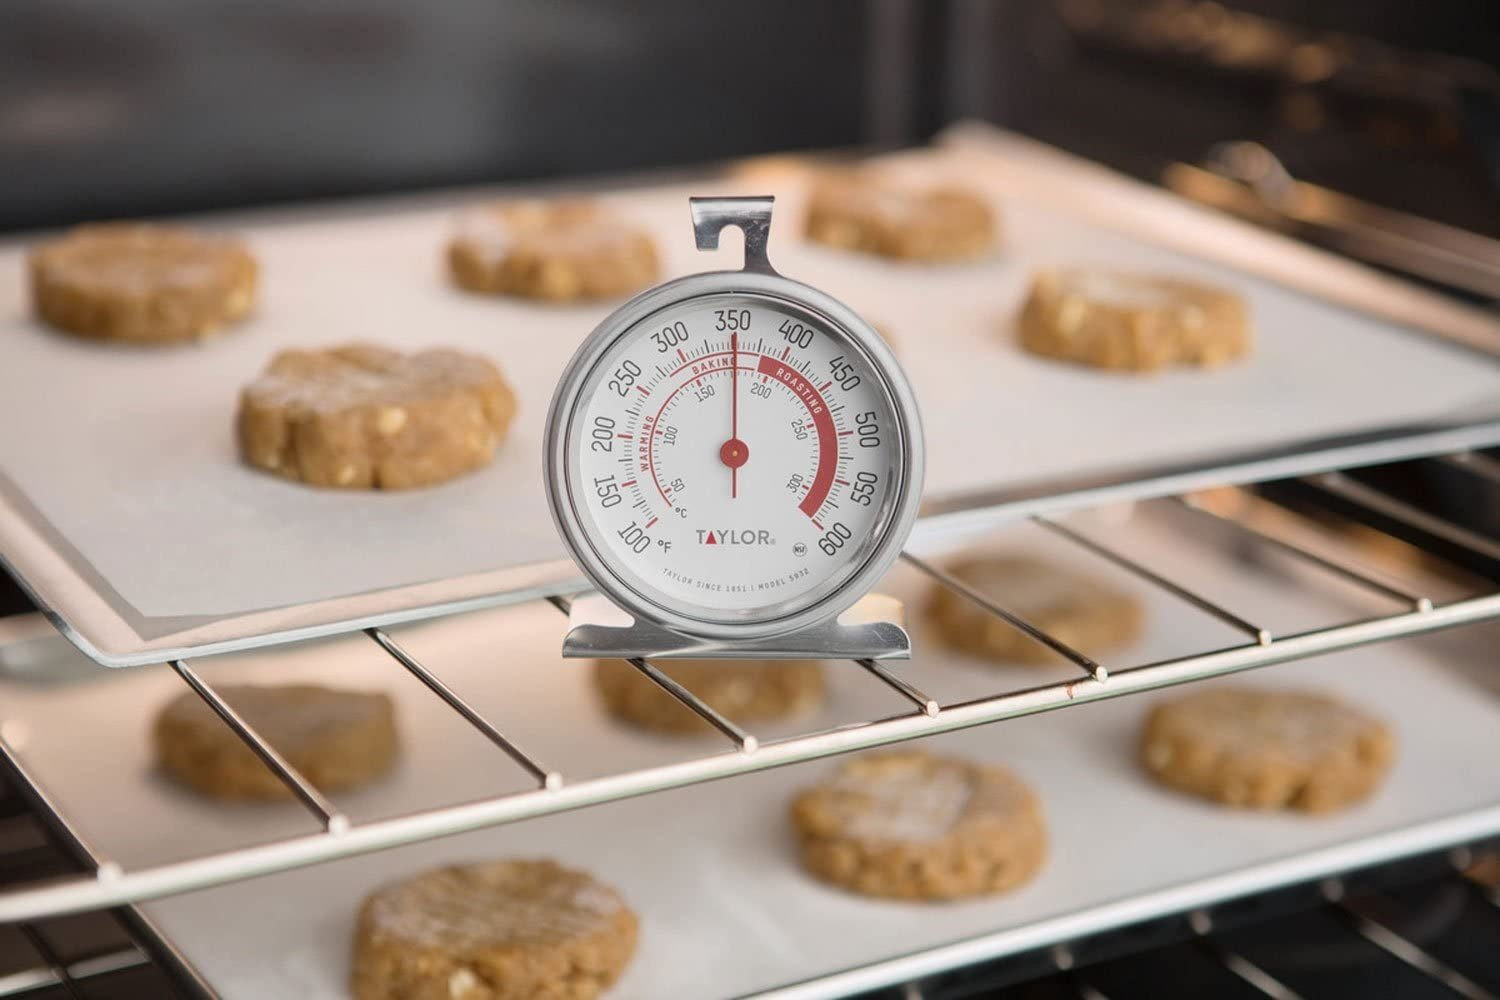 Thermometer in oven with cookies